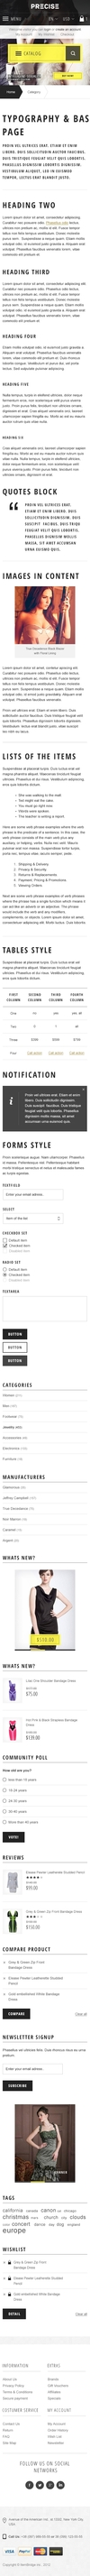 22_width-320-typography_page.__thumbnail